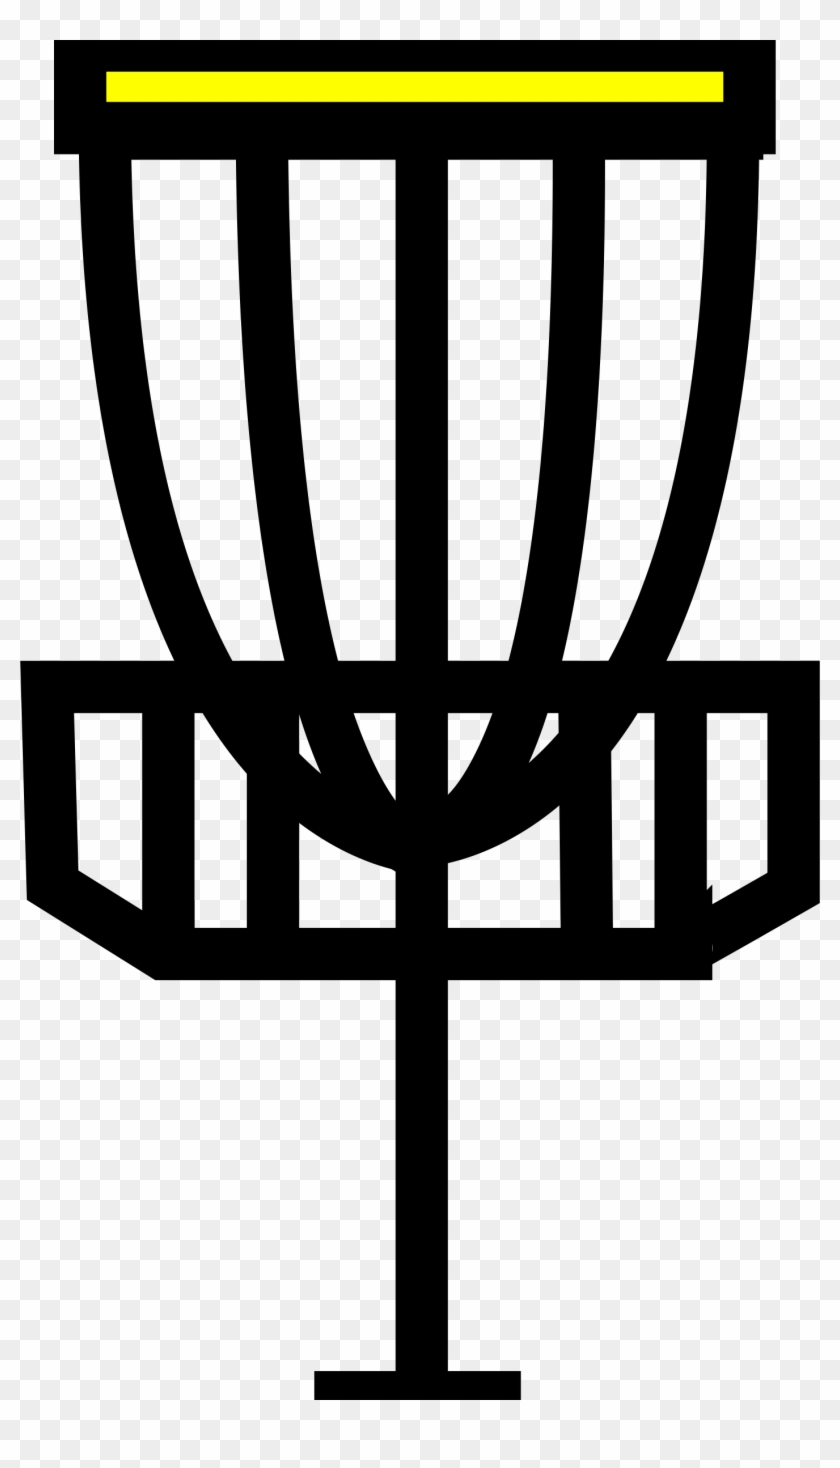 This Free Icons Png Design Of Disc Golf Goal, Transparent Png.